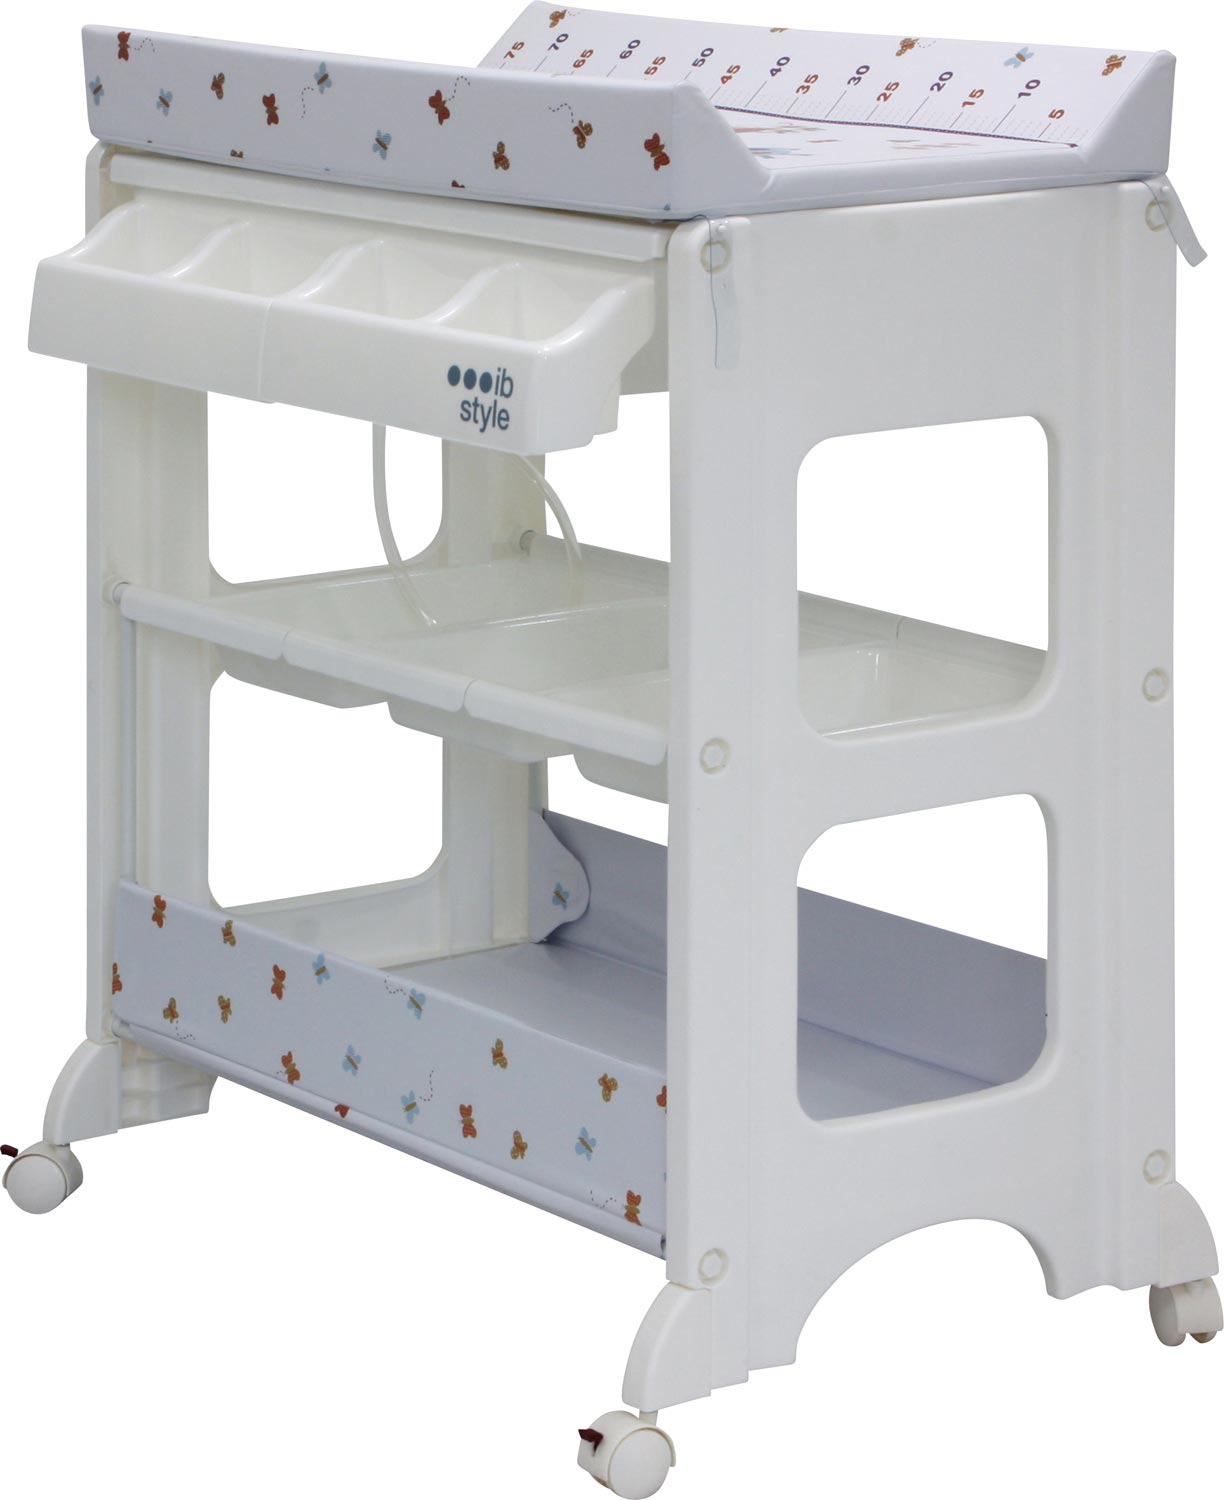 Changing Unit Table Bath Portable Changer Dresser Mat Baby Cleaning Diaper Ebay